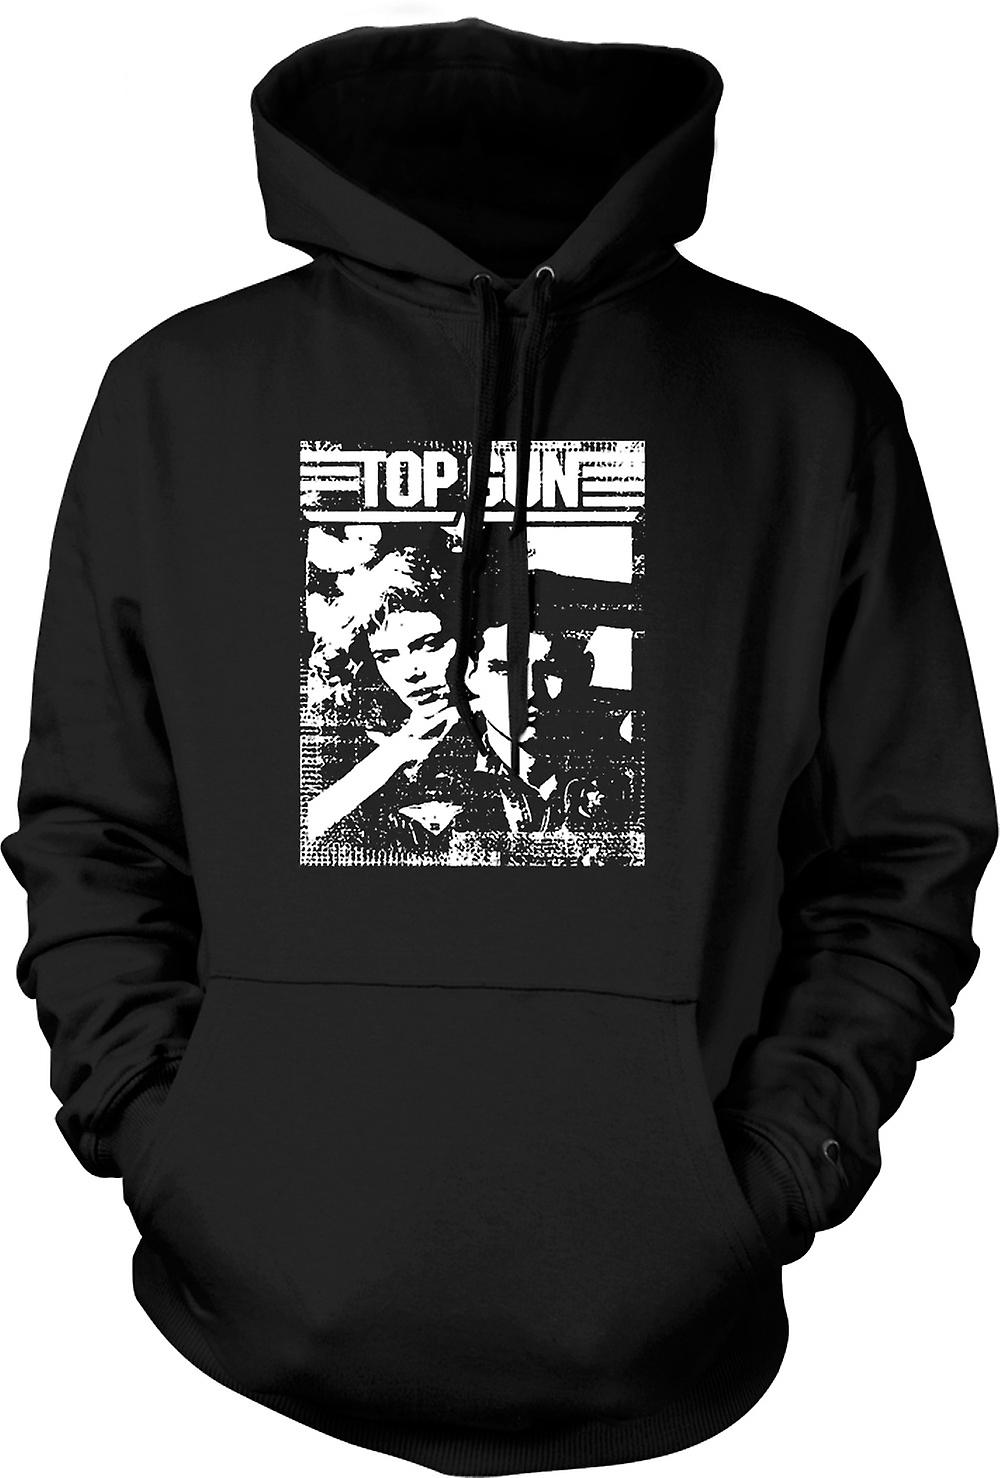 Mens Hoodie - Top Gun Maverick - Pop Art - Movie